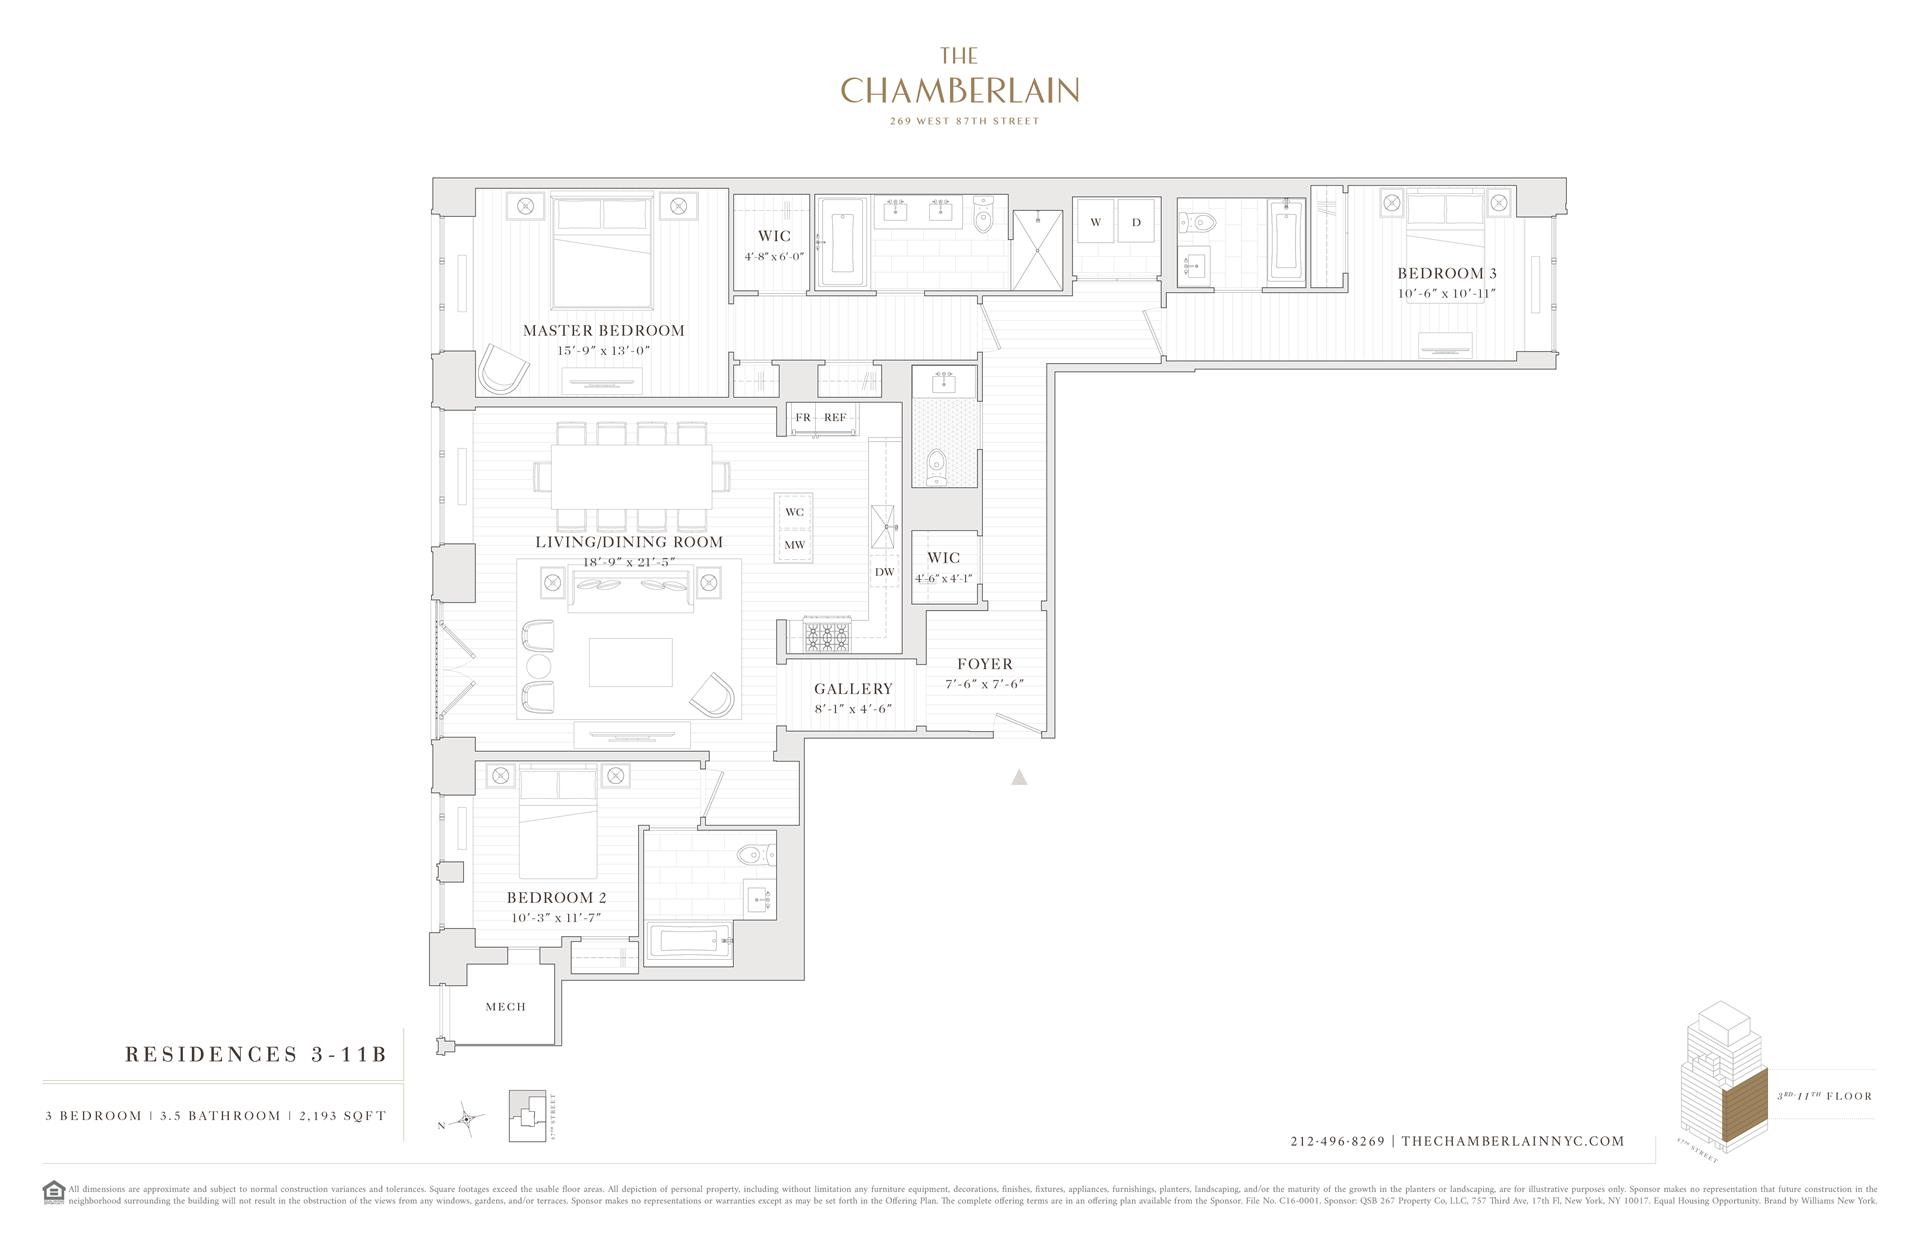 Floor plan of 269 West 87th St, 7B - Upper West Side, New York